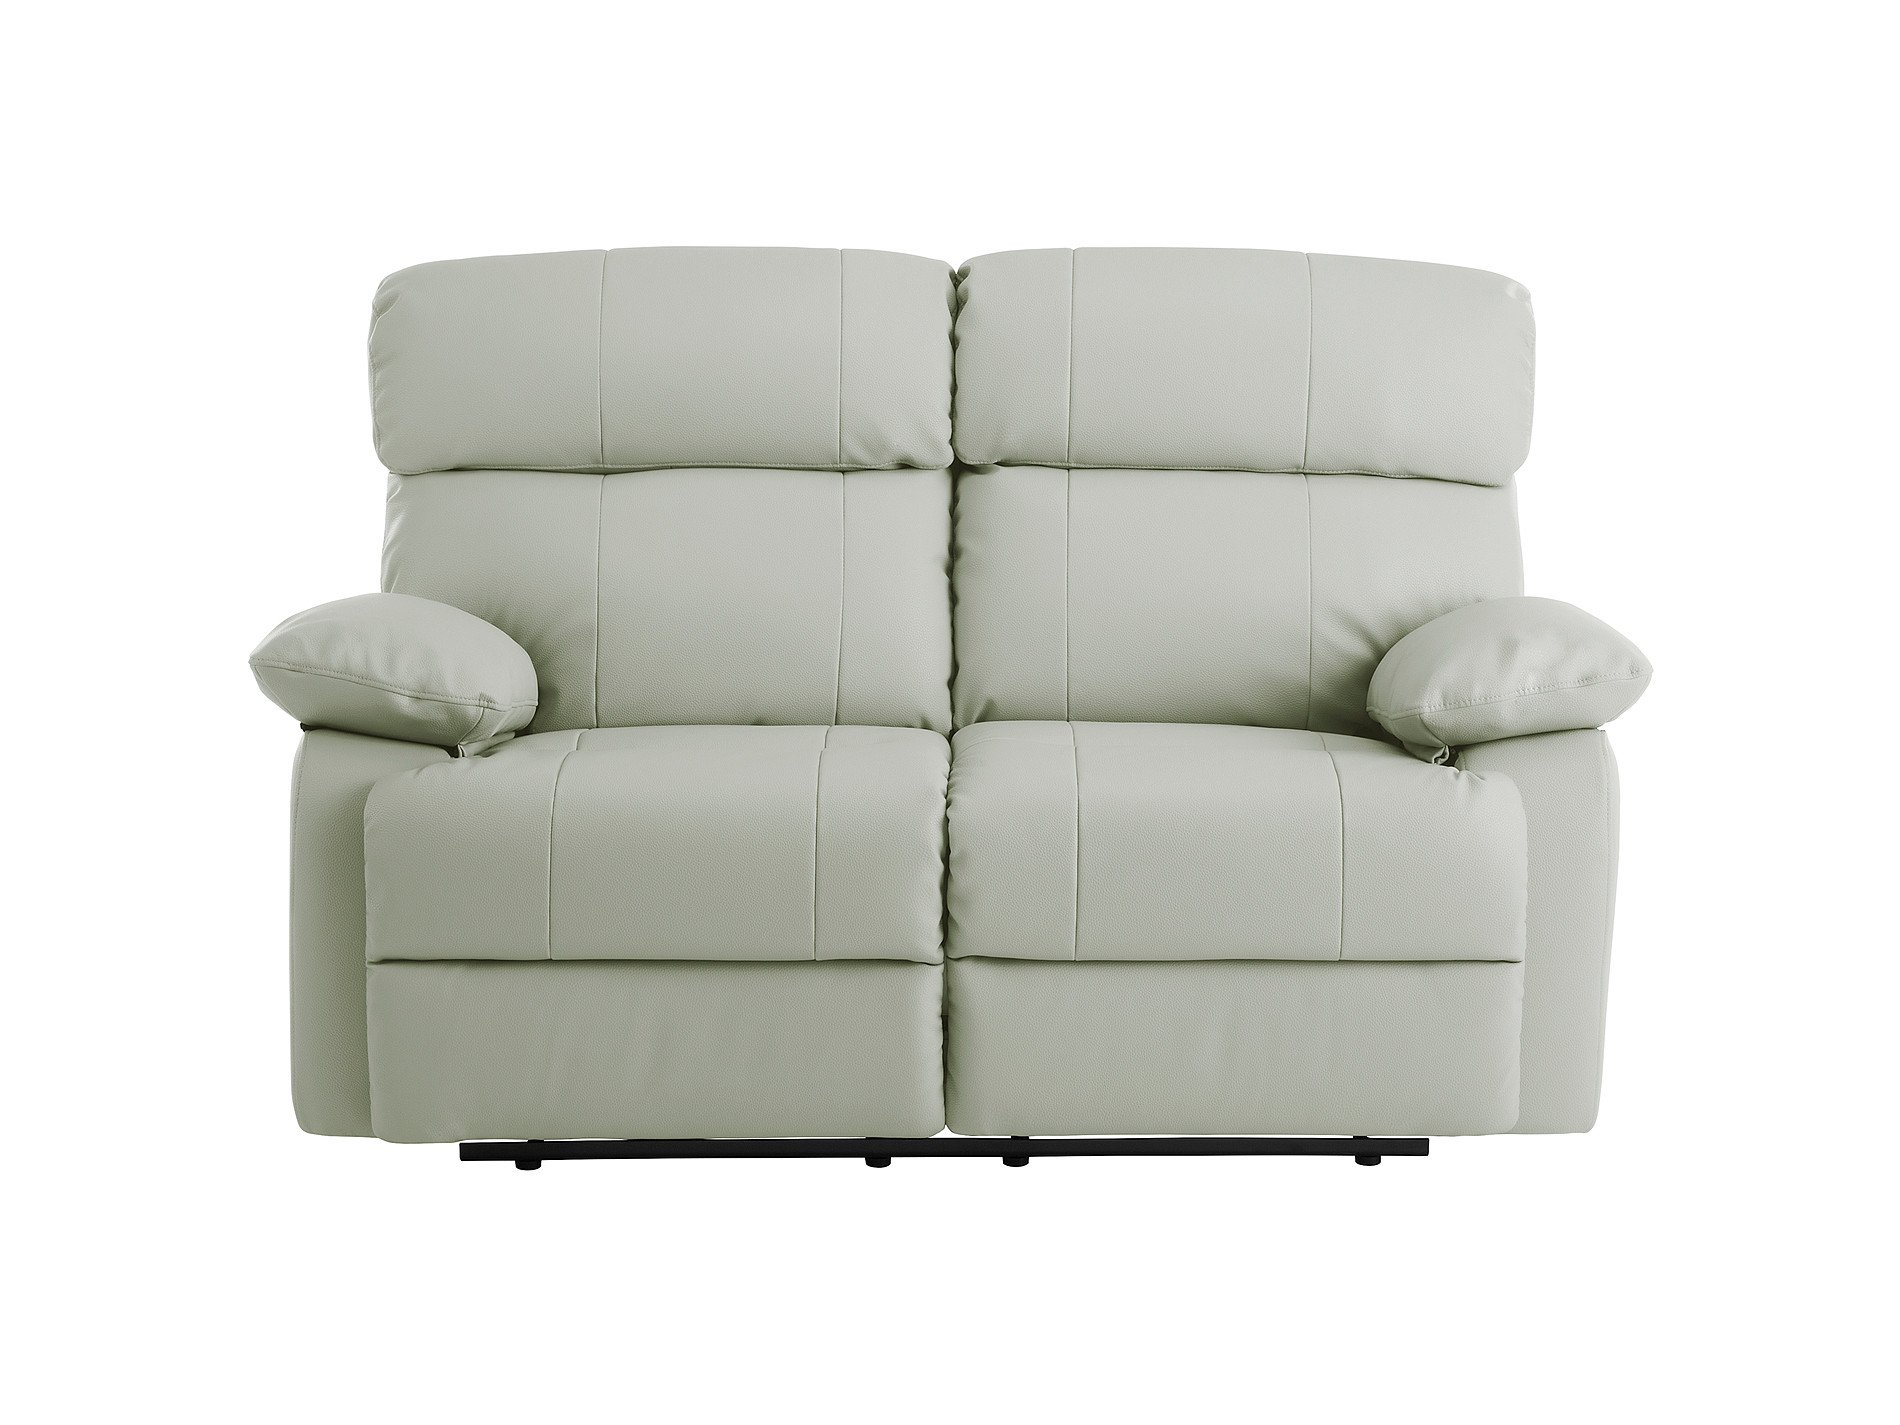 Small Reclining Loveseat 28 Images Sofa Awesome Corner Loveseat Small 2017 Ideas Loveseat